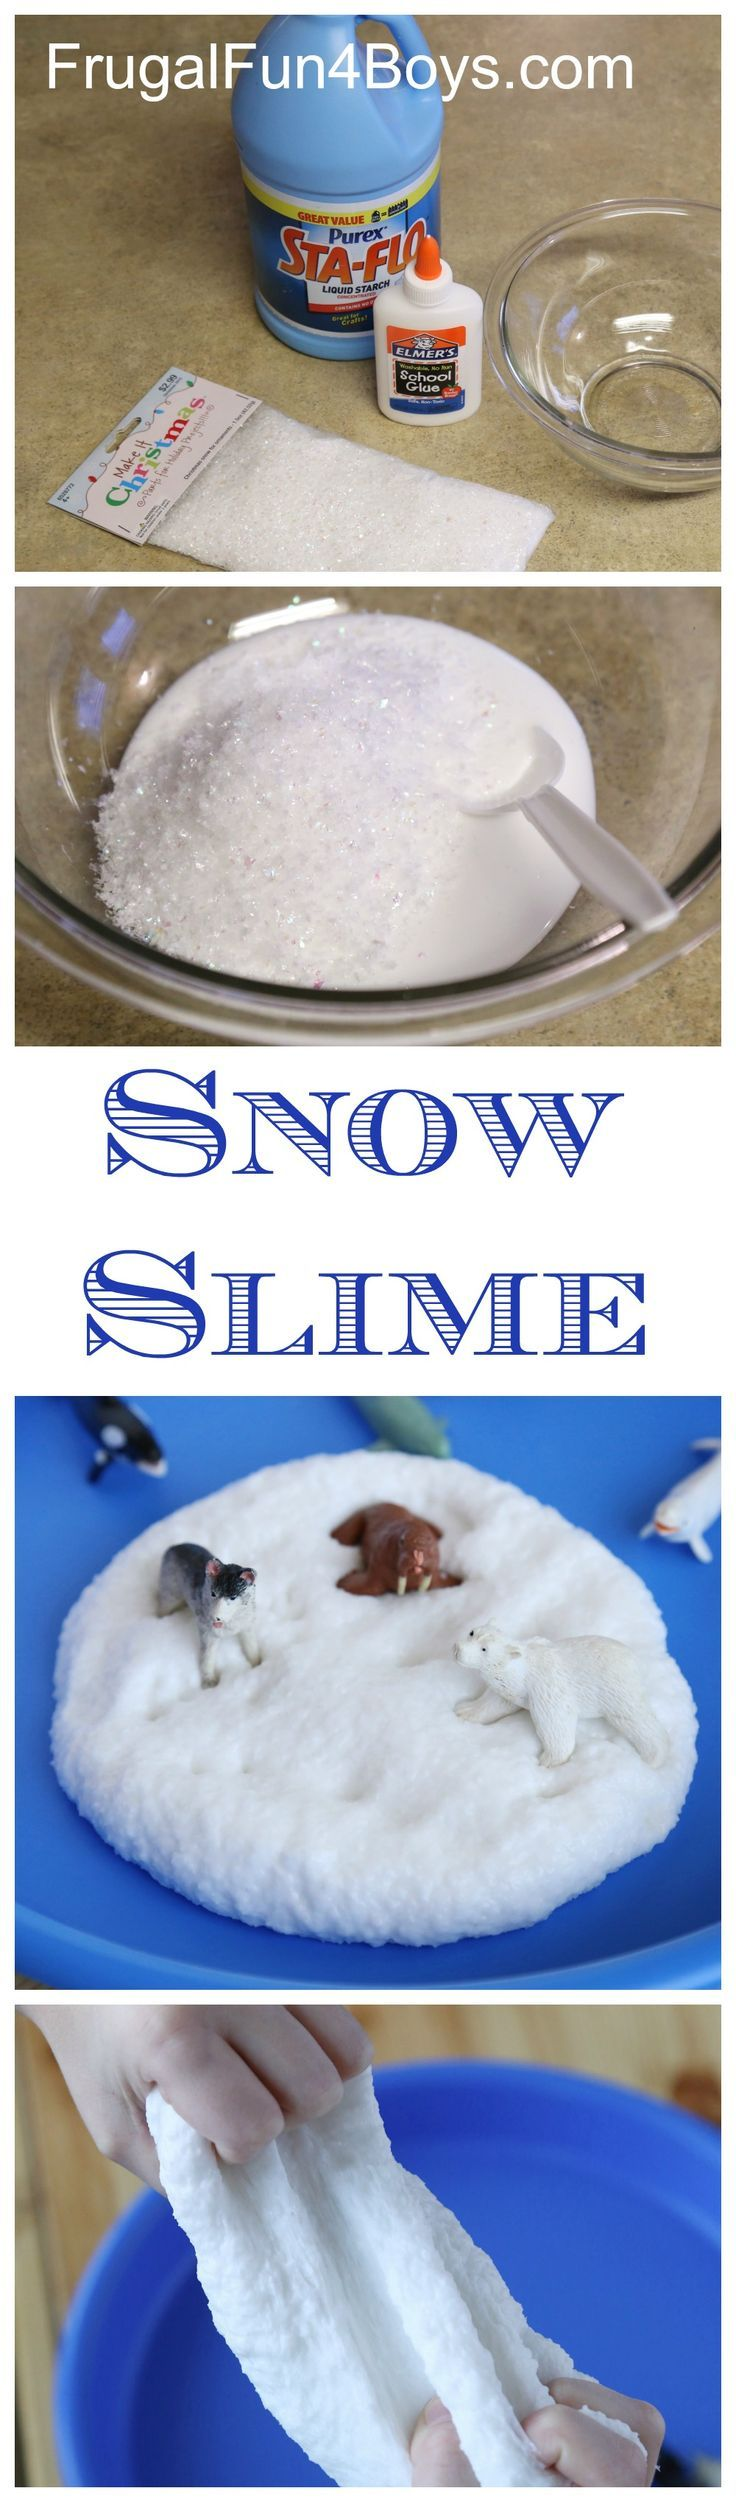 How to Make Snow Slime - This stuff stretches and squishes and sparkles like snow!  Fun winter activity for kids.